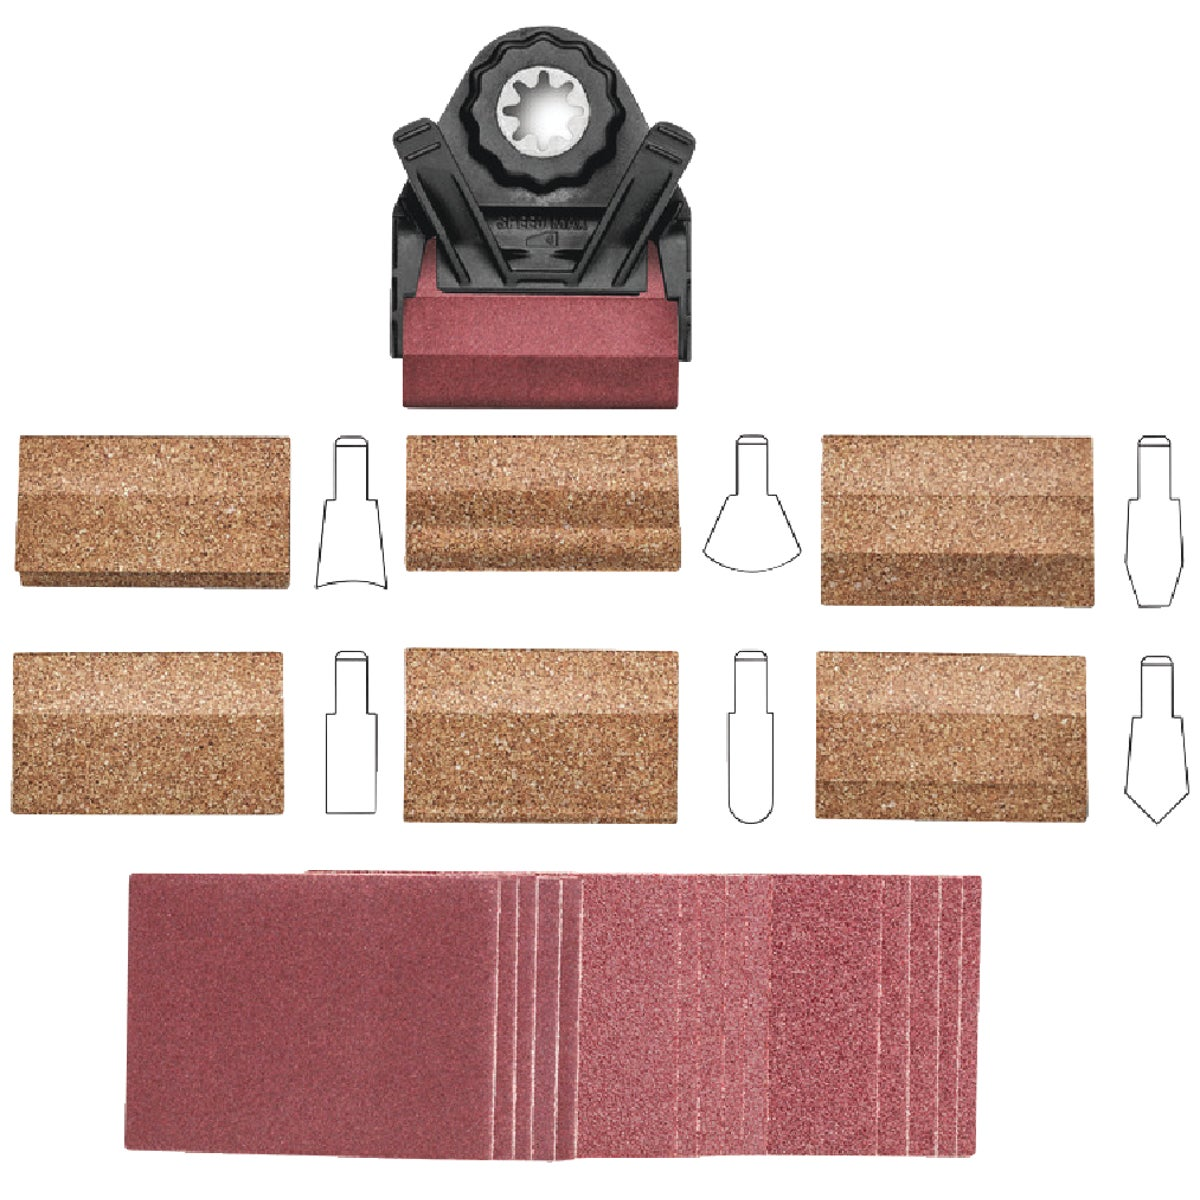 PROFILE SANDING KIT - 63806183013 by Fein Power Tools